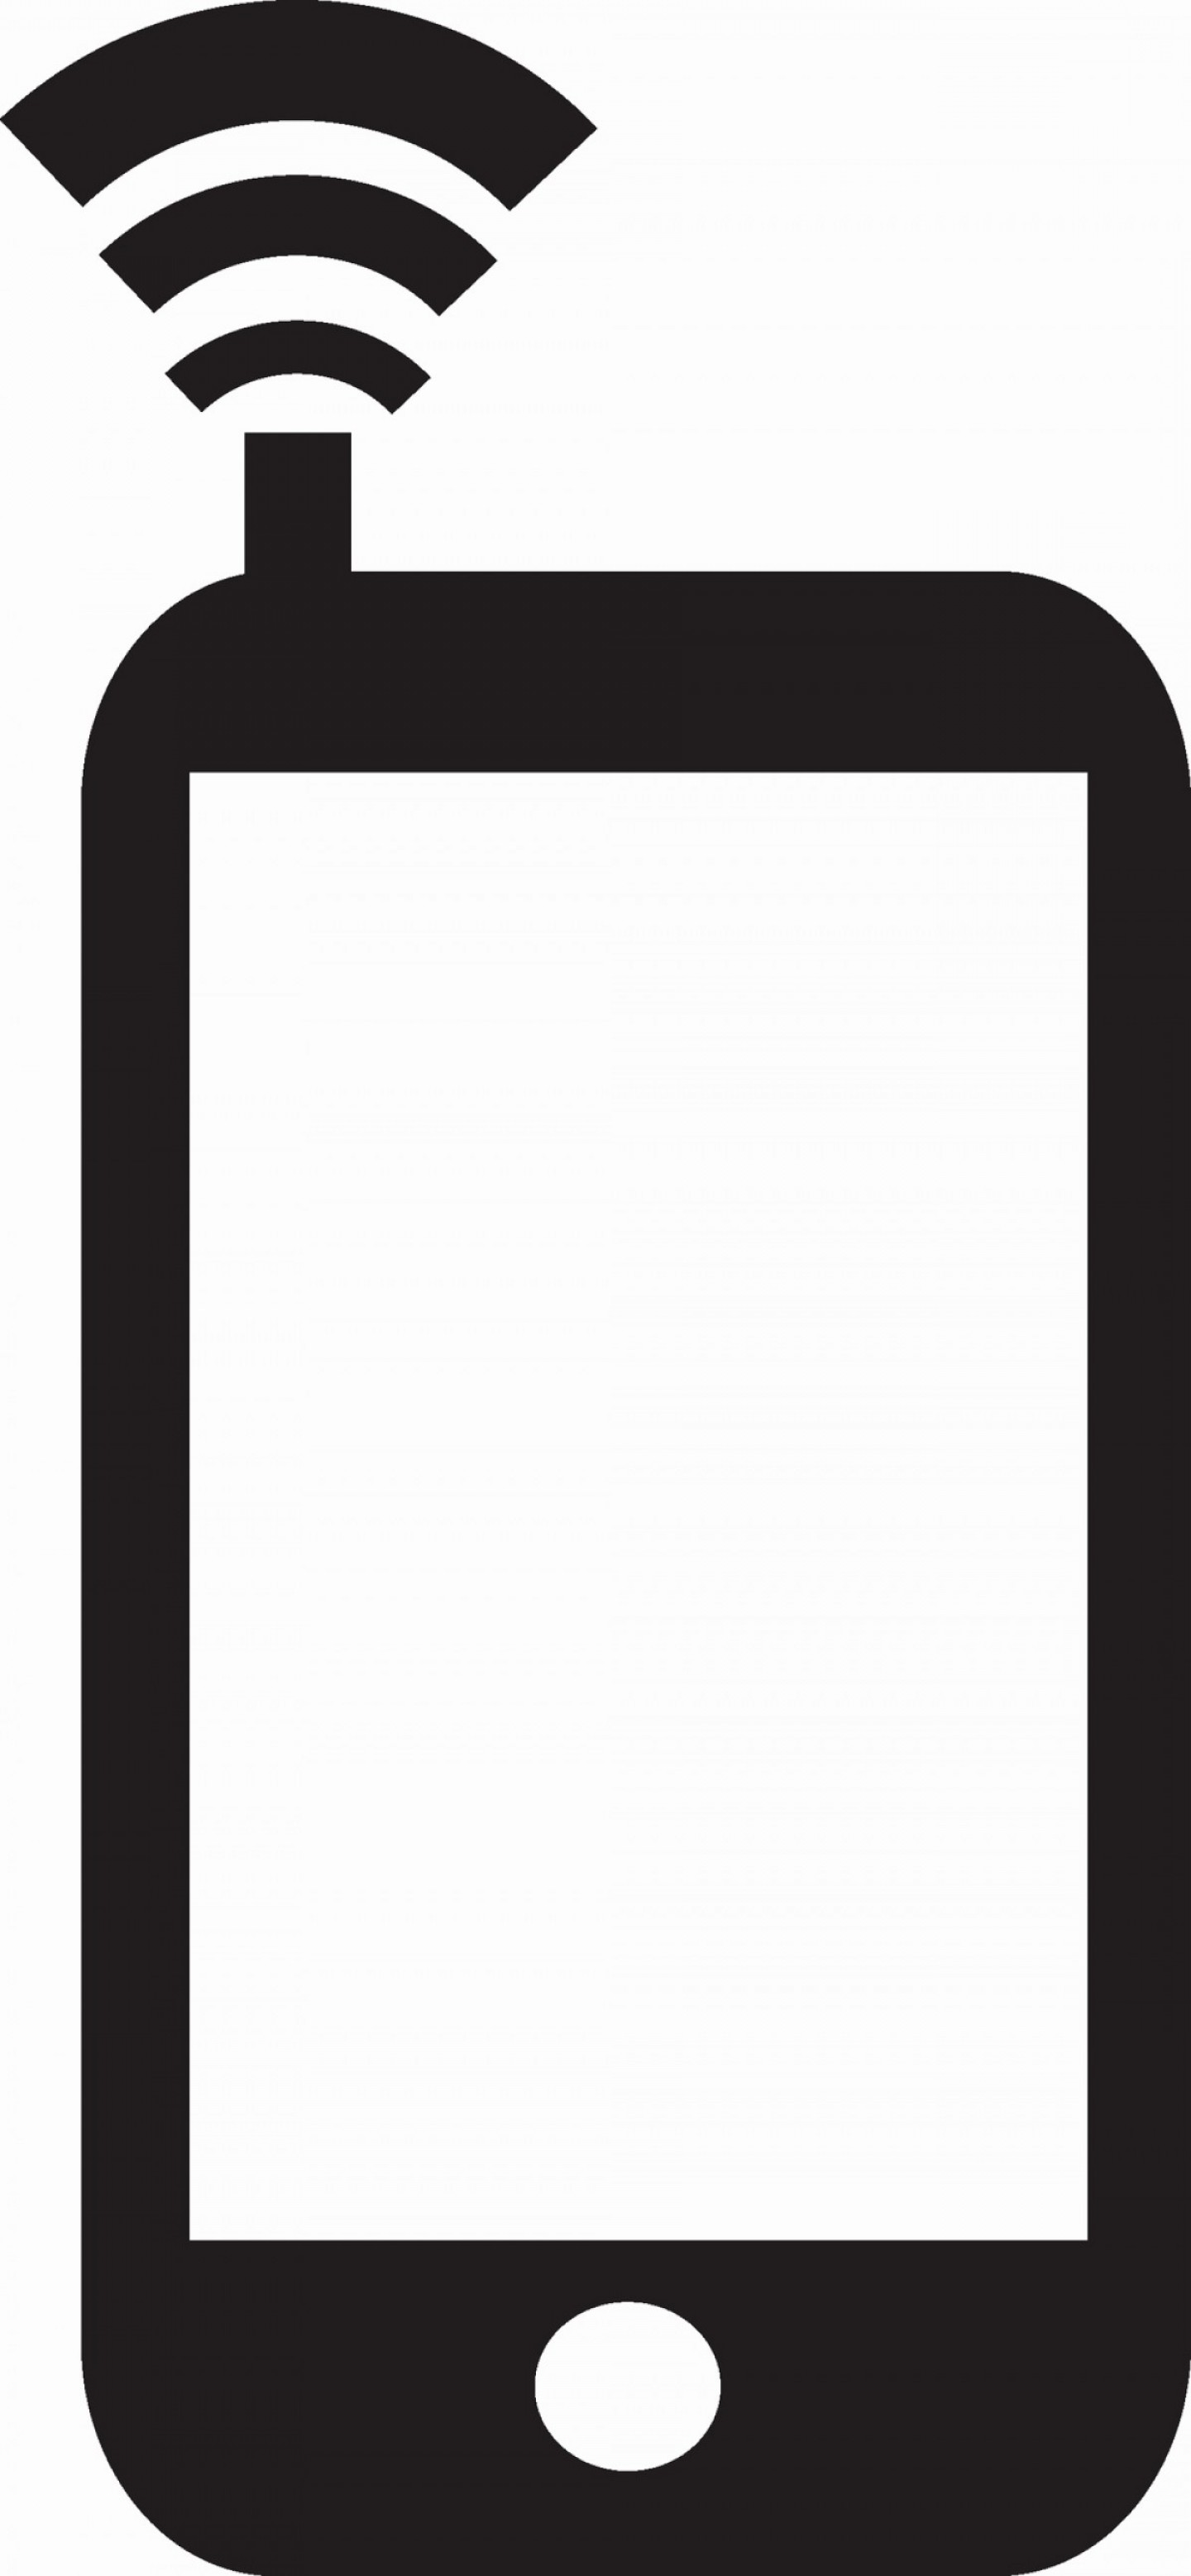 White IPhone Vector Png: No Cell Phone Icon Awesome Iphone Icon Free Png And Vector